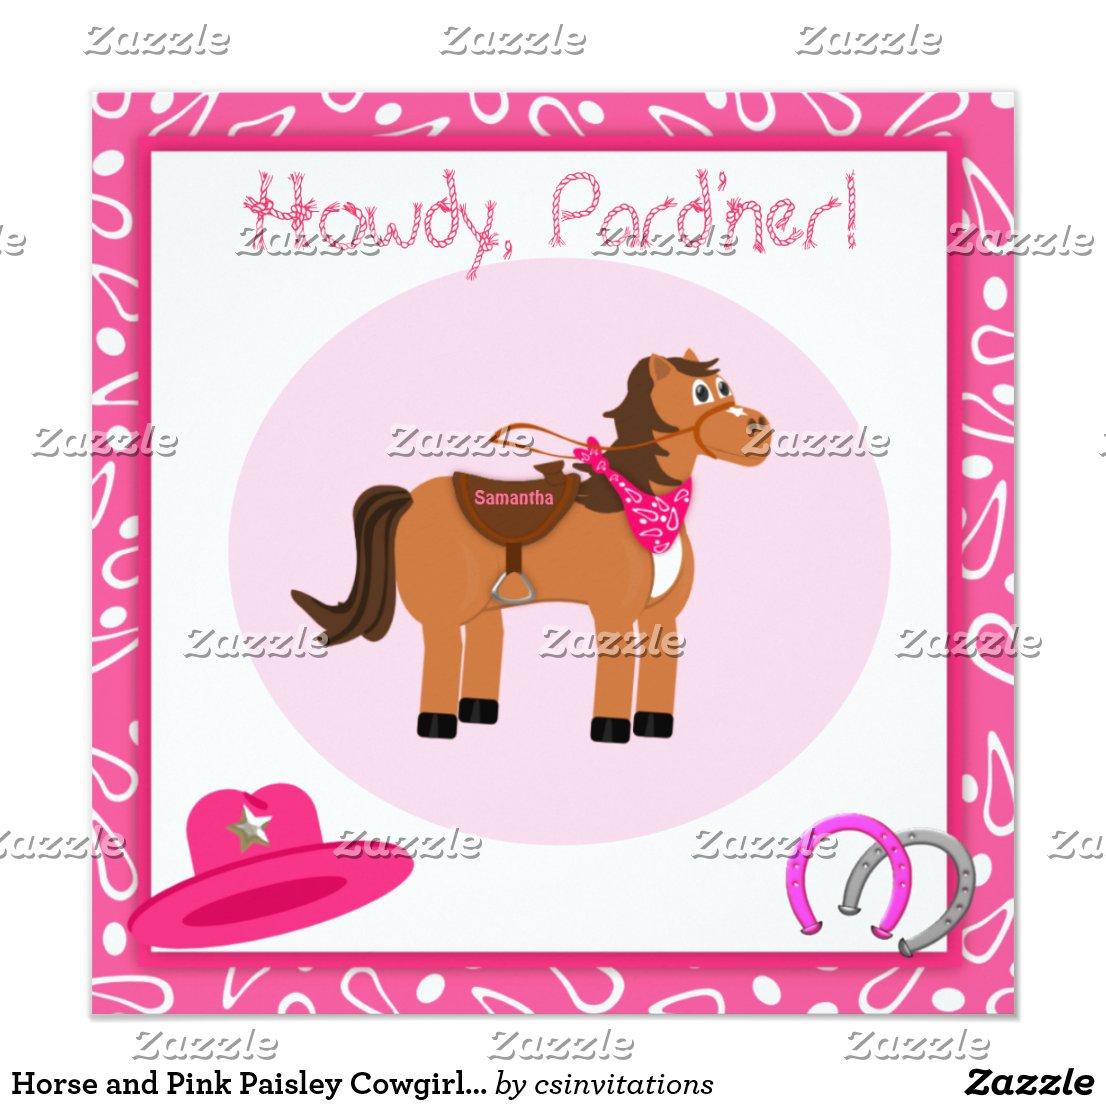 Horse and Pink Paisley Cowgirl Birthday Party